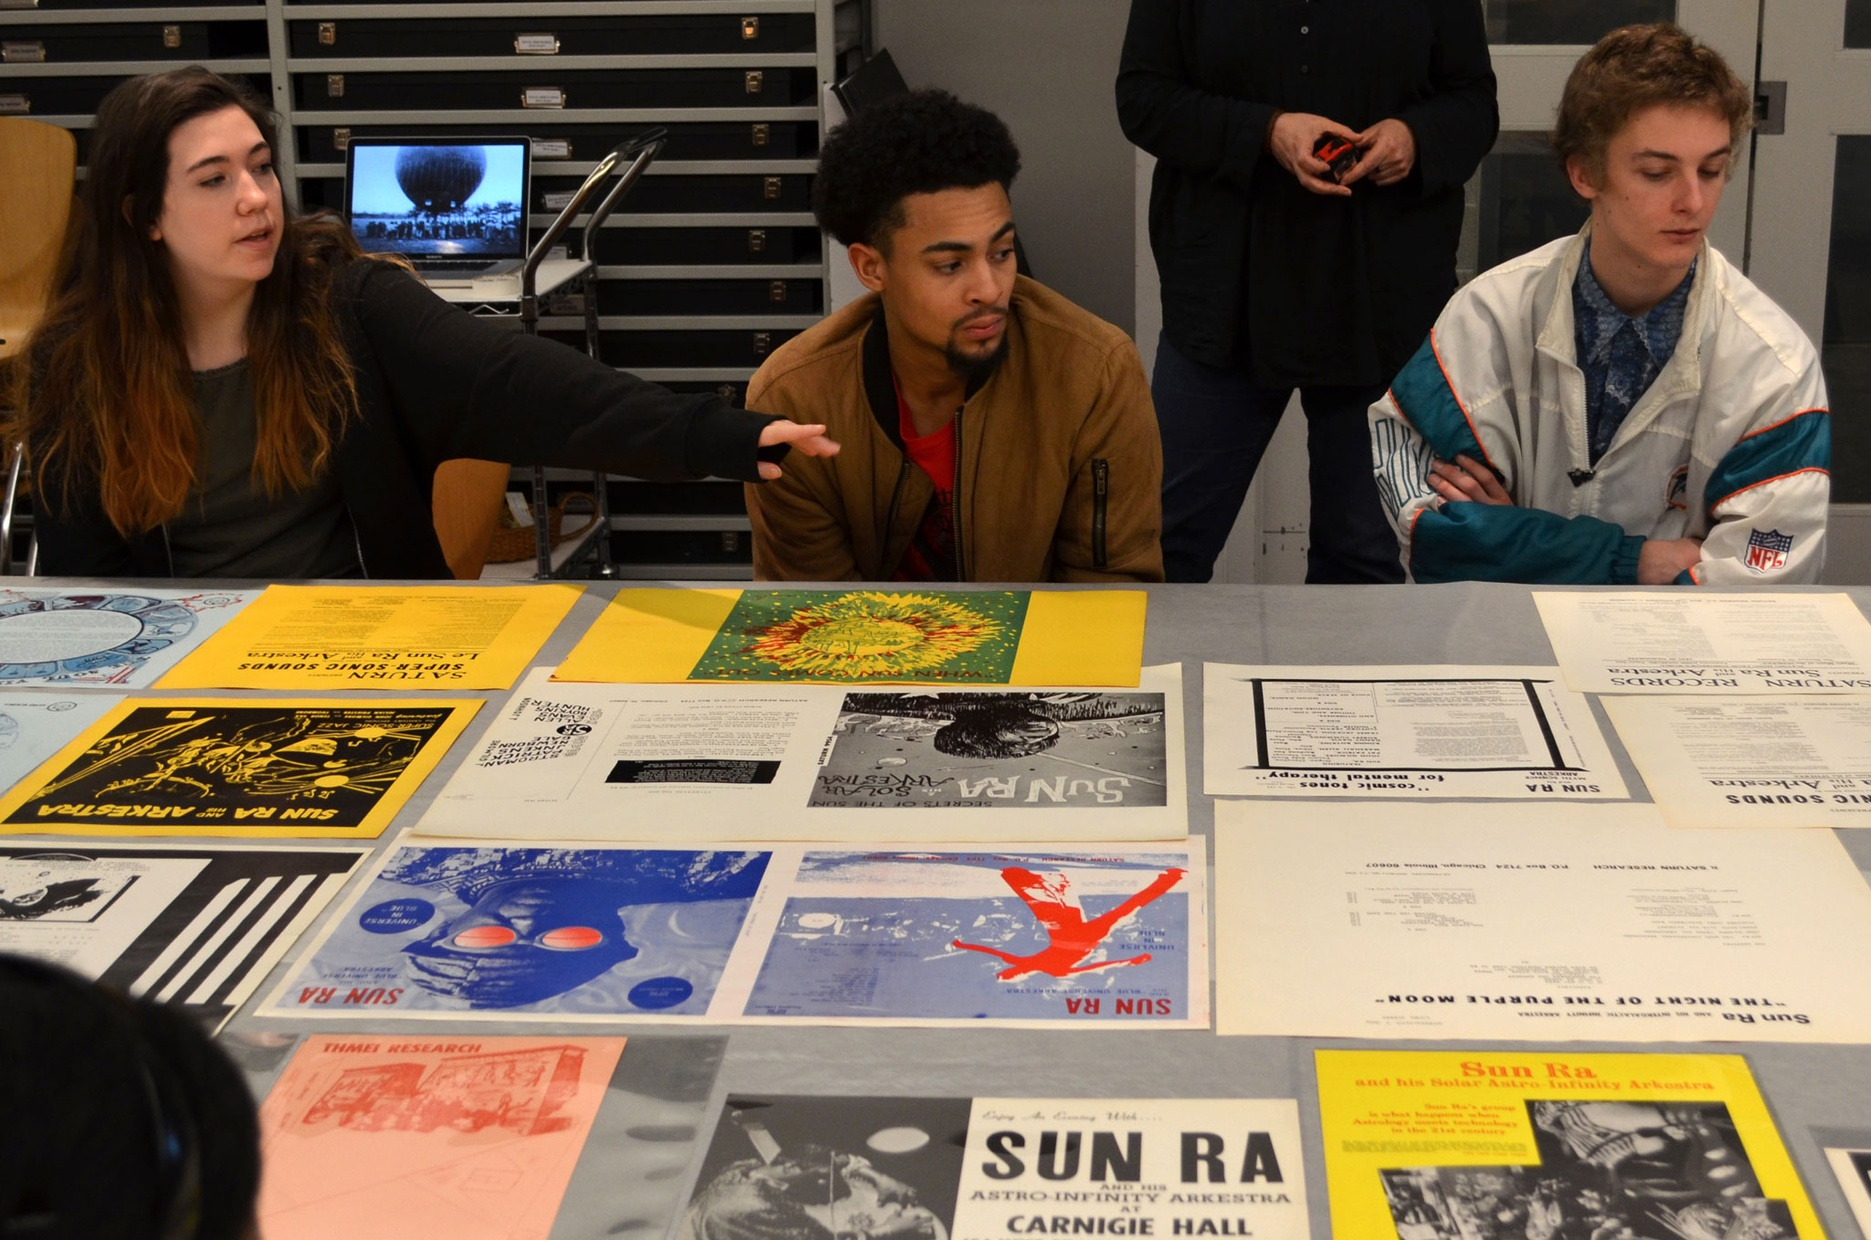 Three students sit behind a table covered in colorful prints and album covers.